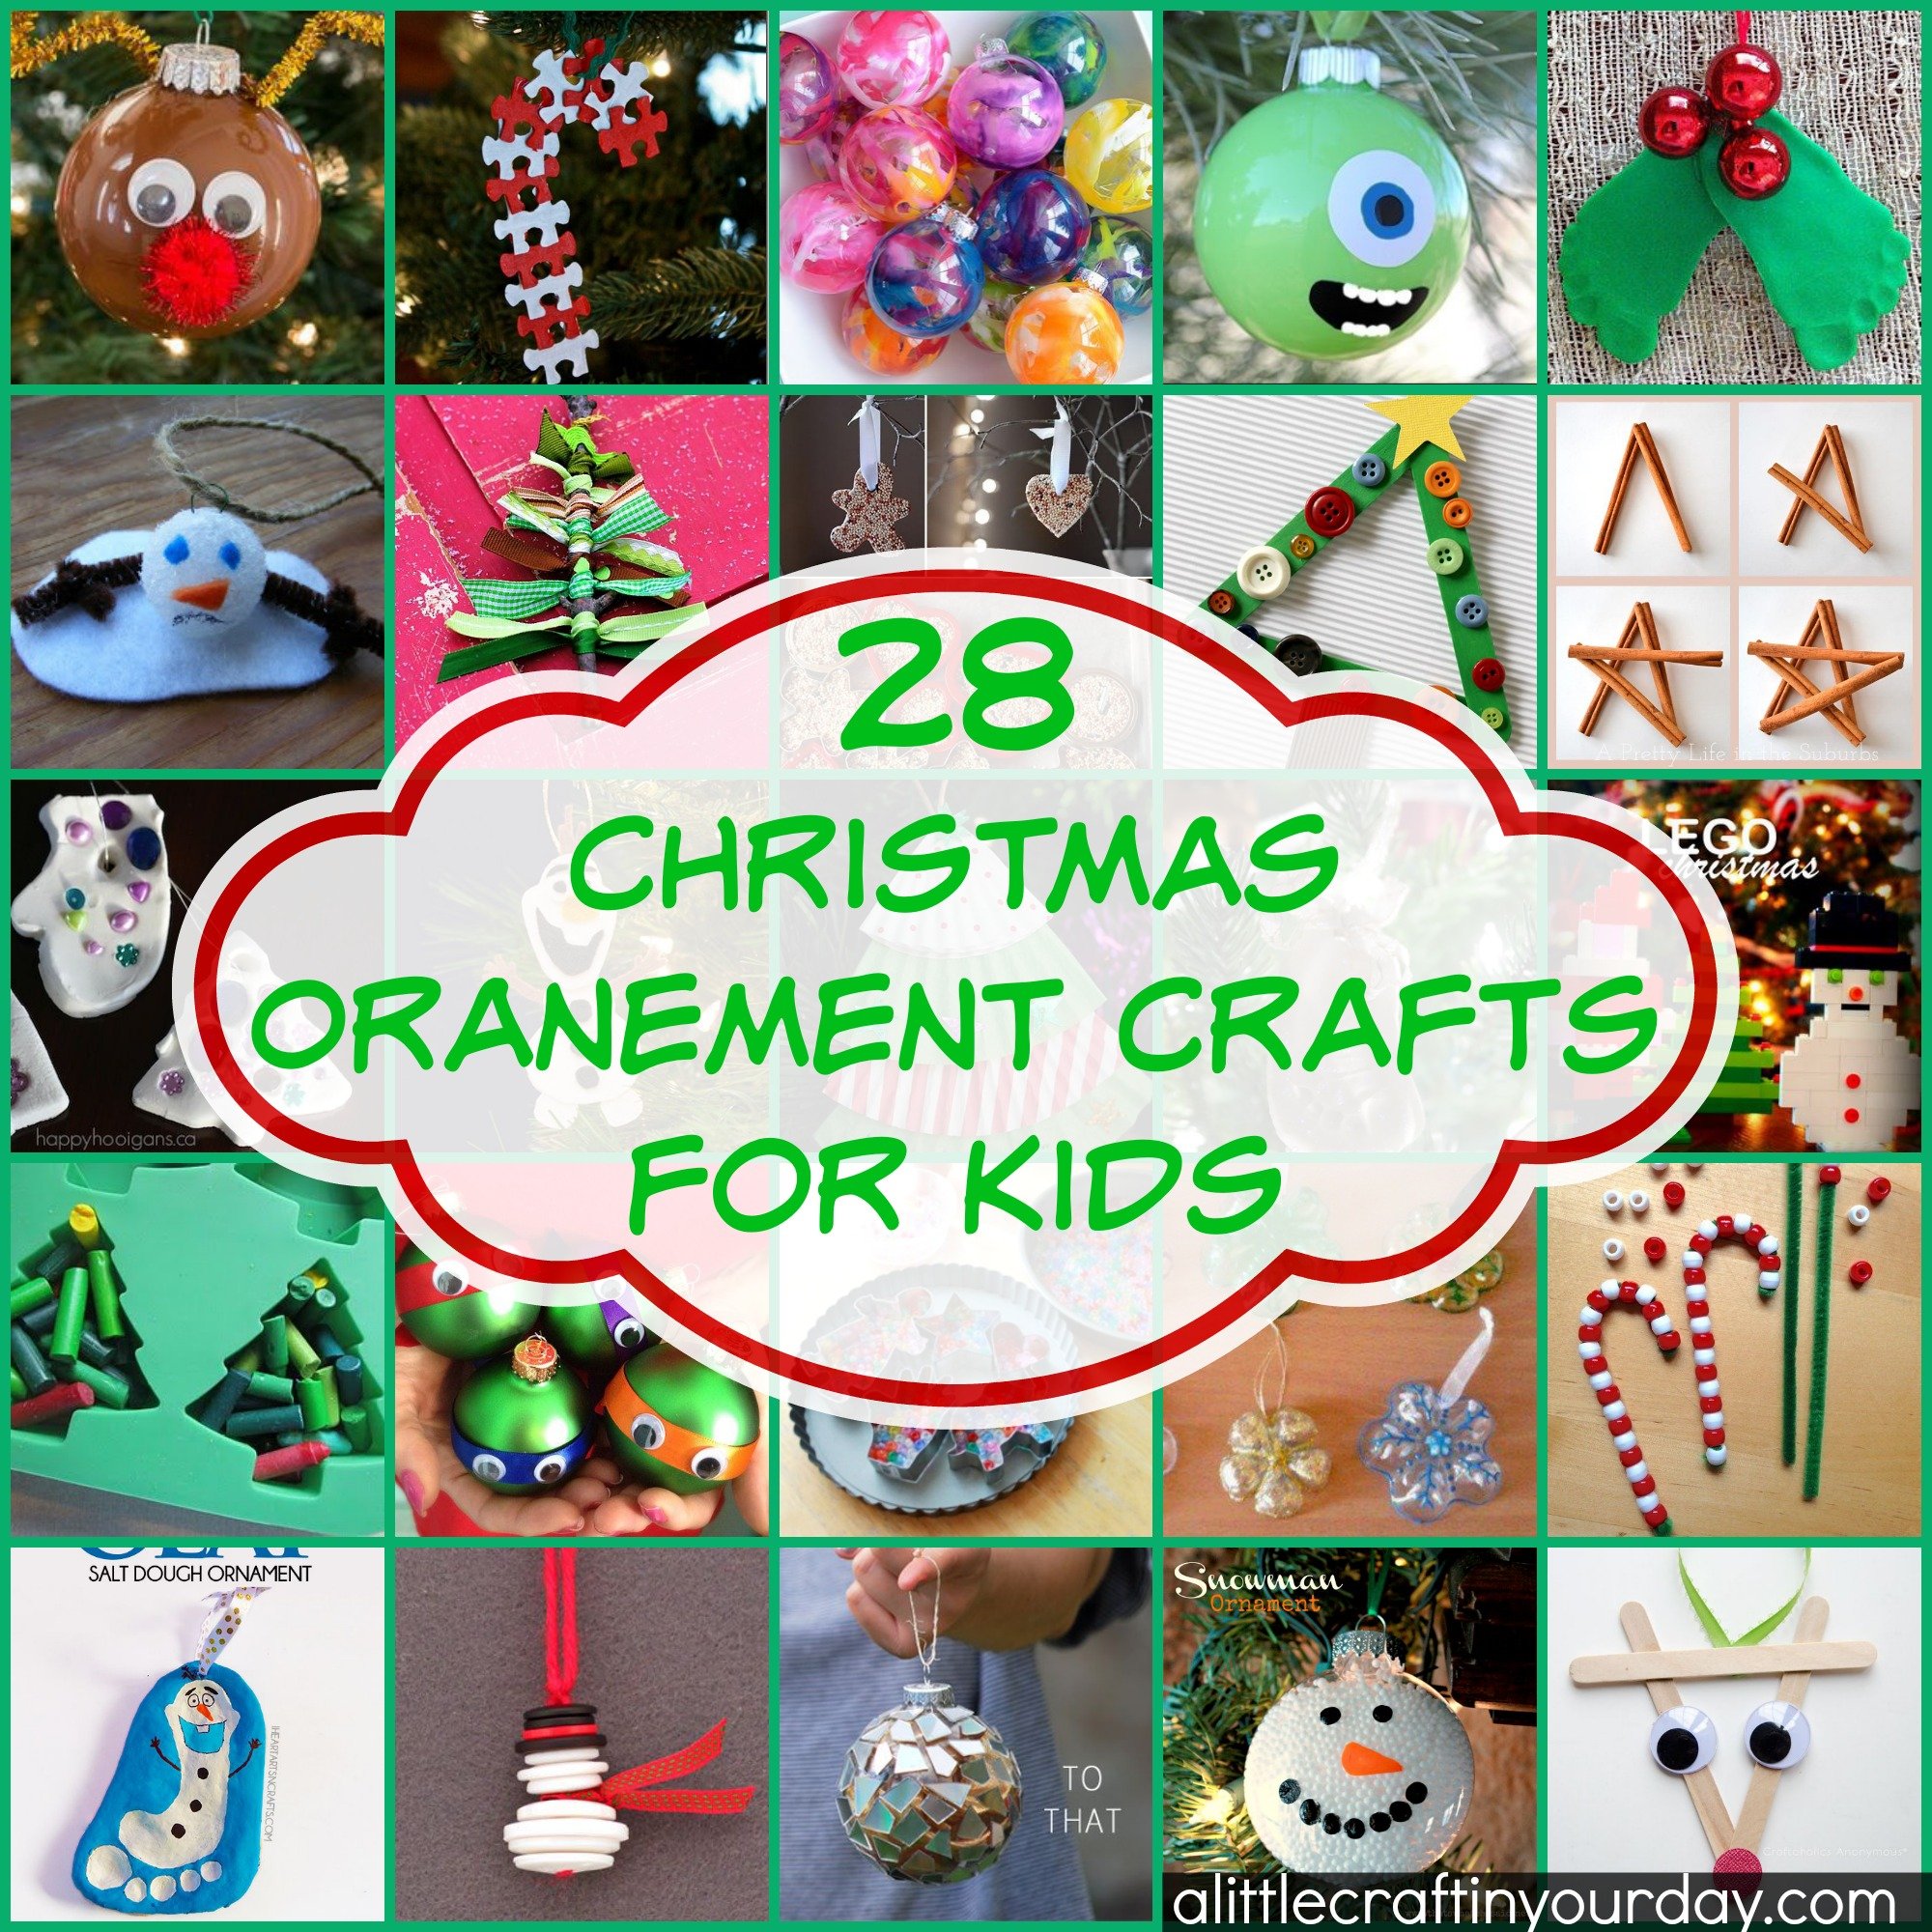 1130 28 christmas ornament crafts for kids 28_christmas_oranment_crafts_for_kids - Christmas Decoration Ideas For Kids